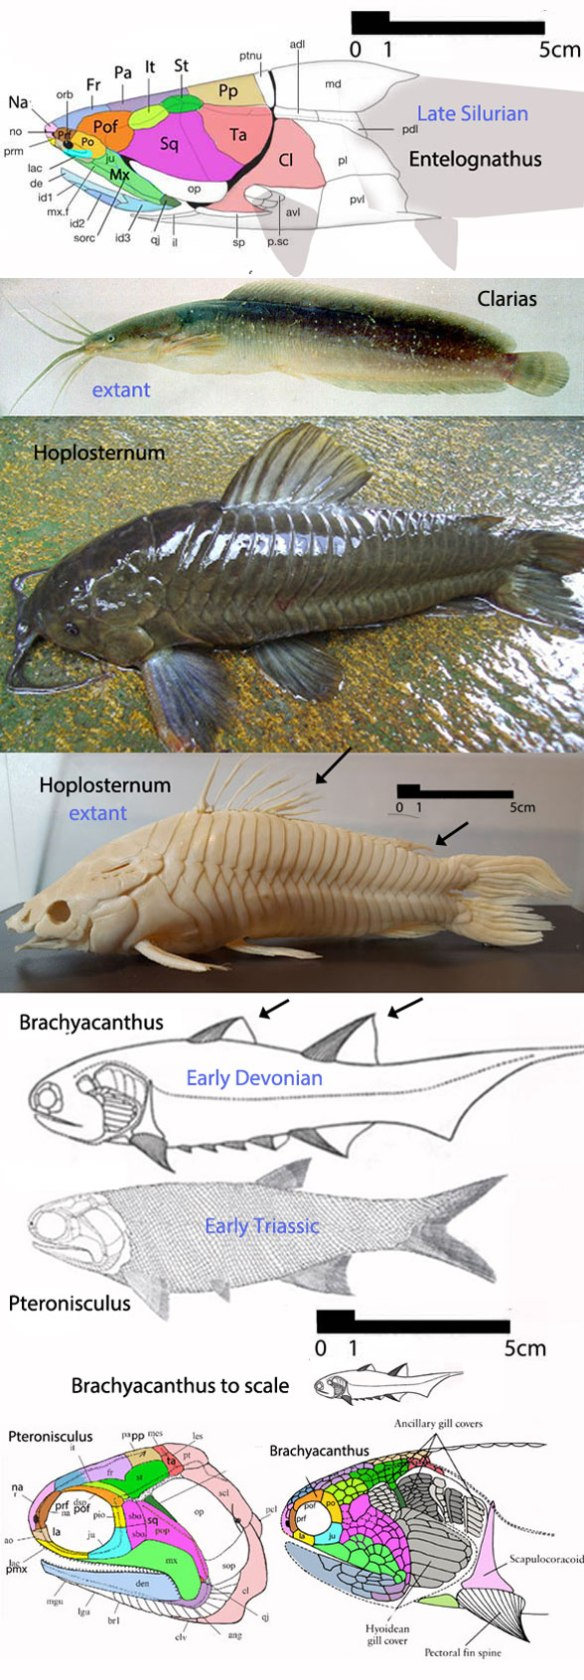 Figure 2. The placoderm/catfish to spiny shark/lobe fin transition. We need more taxa, but here's how the LRT recovers it.